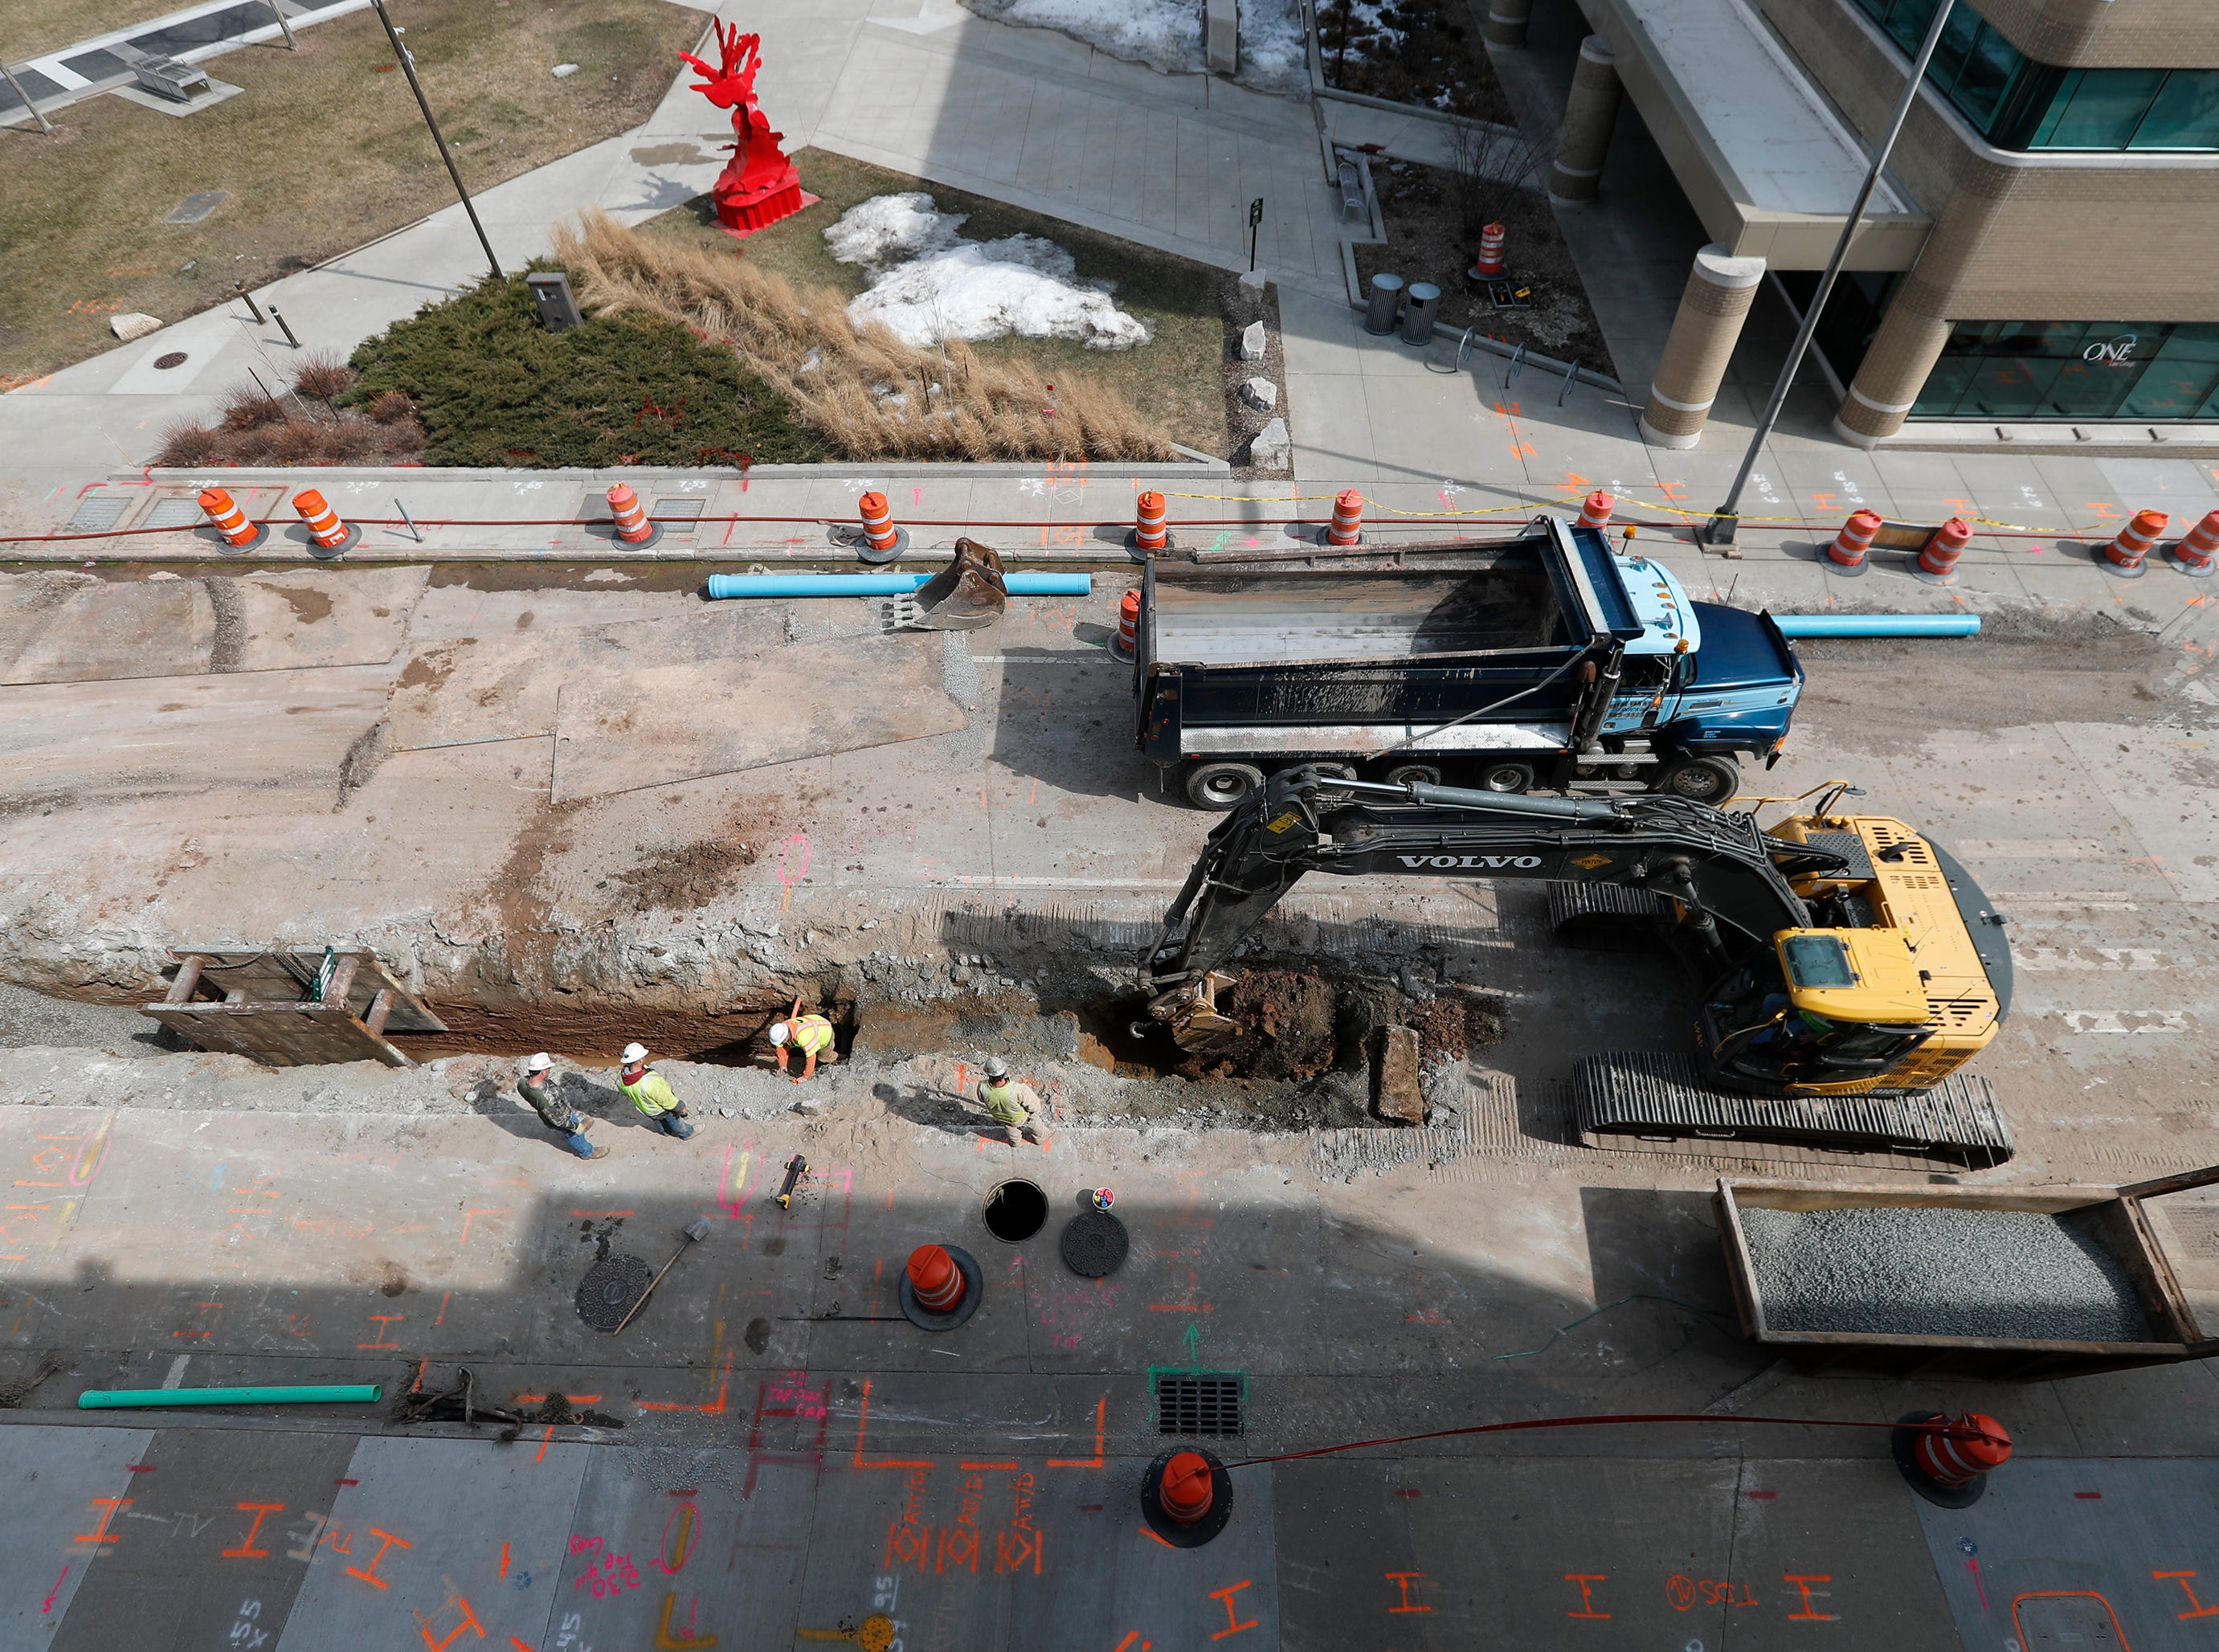 Construction work on South Appleton Street Wednesday, March 27, 2019, in Appleton, Wis. Danny Damiani/USA TODAY NETWORK-Wisconsin